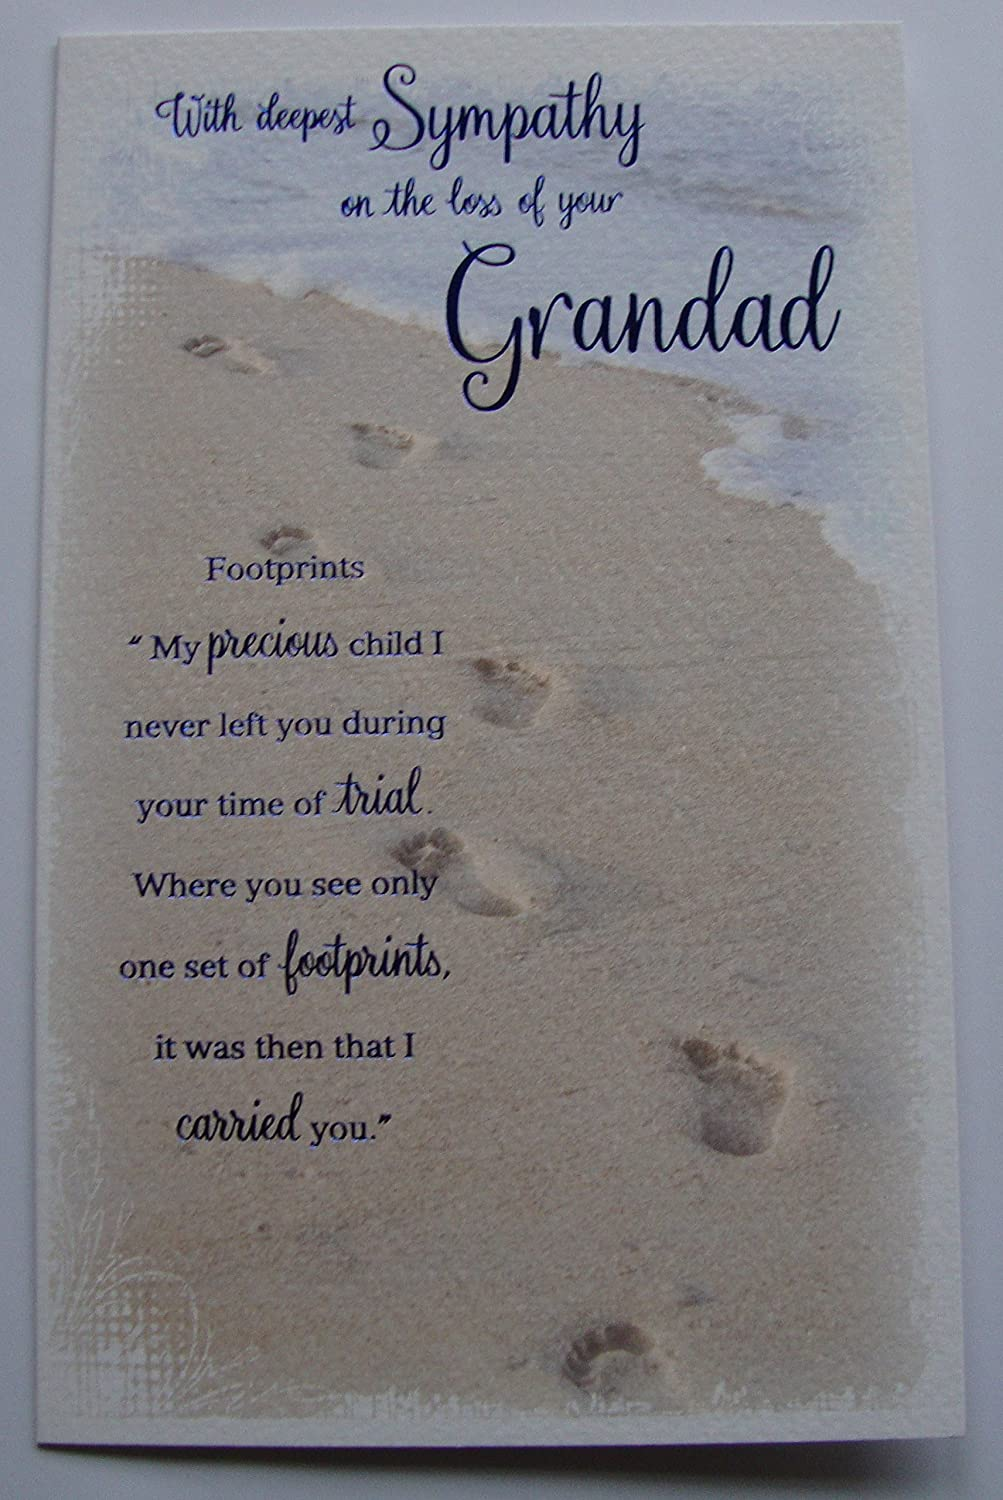 On the loss of your Grandad